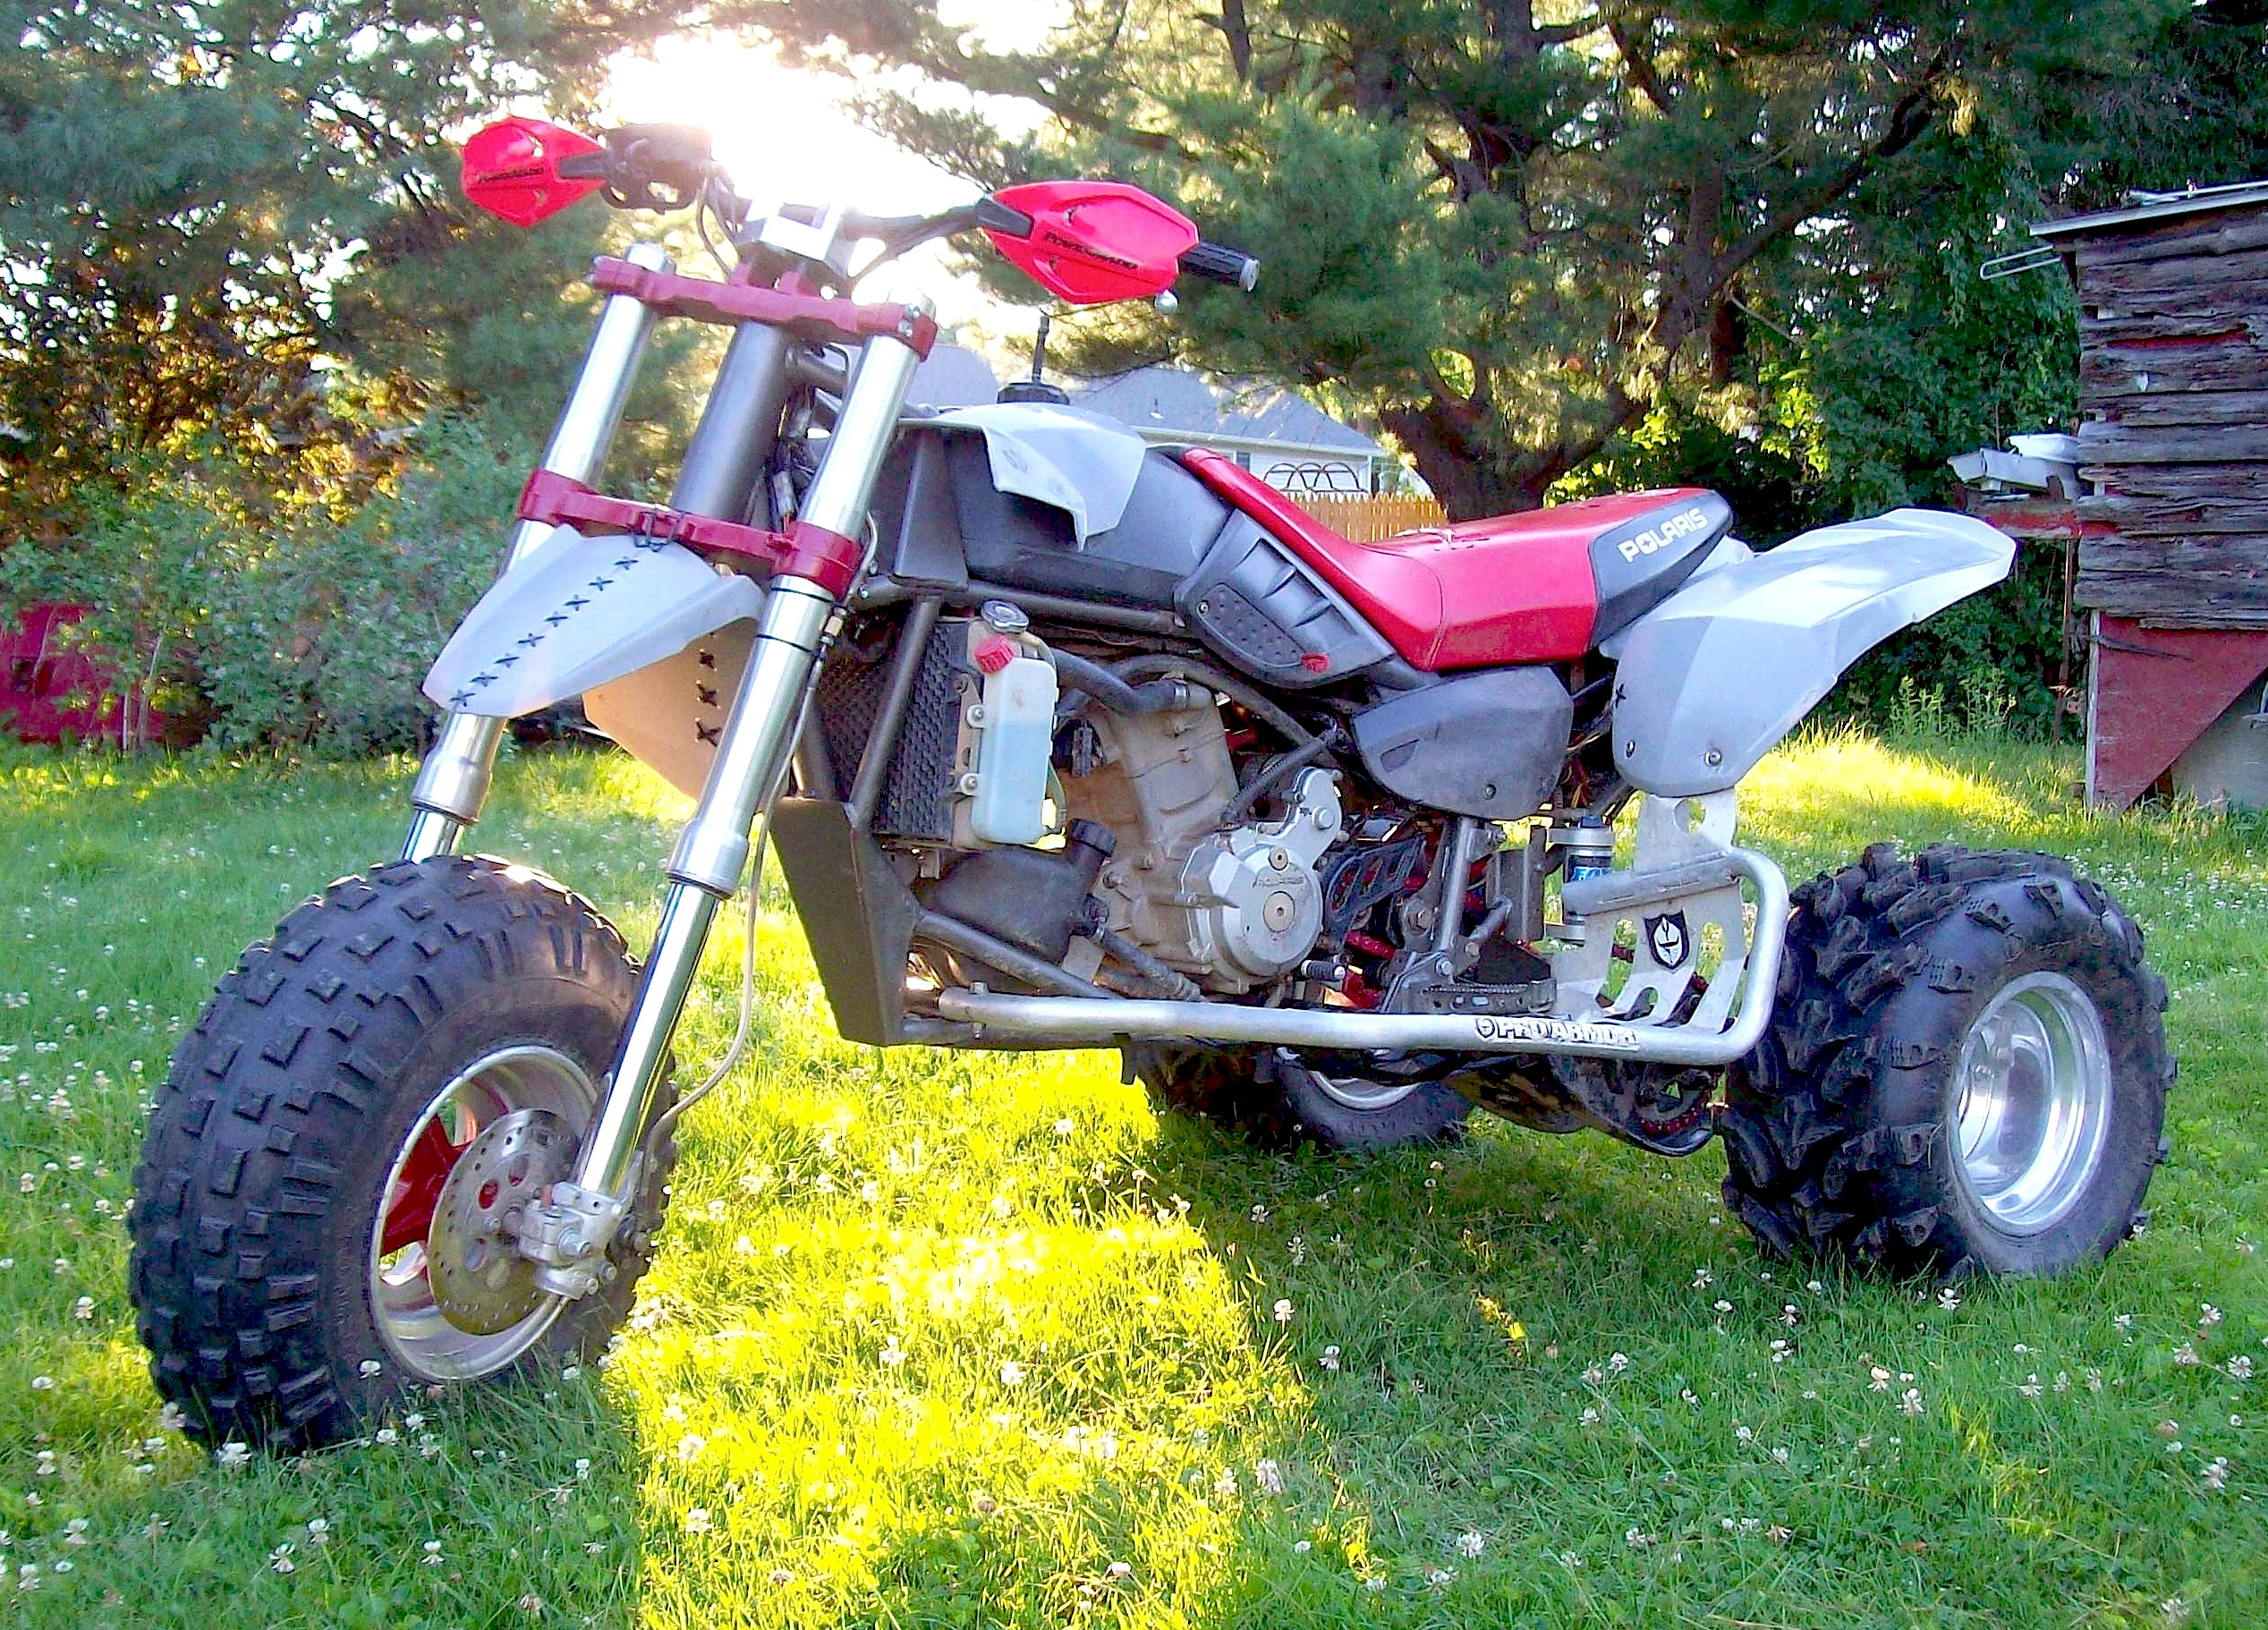 TEN 3-WHEELERS THAT NEVER WENT INTO PRODUCTION | Dirt Wheels